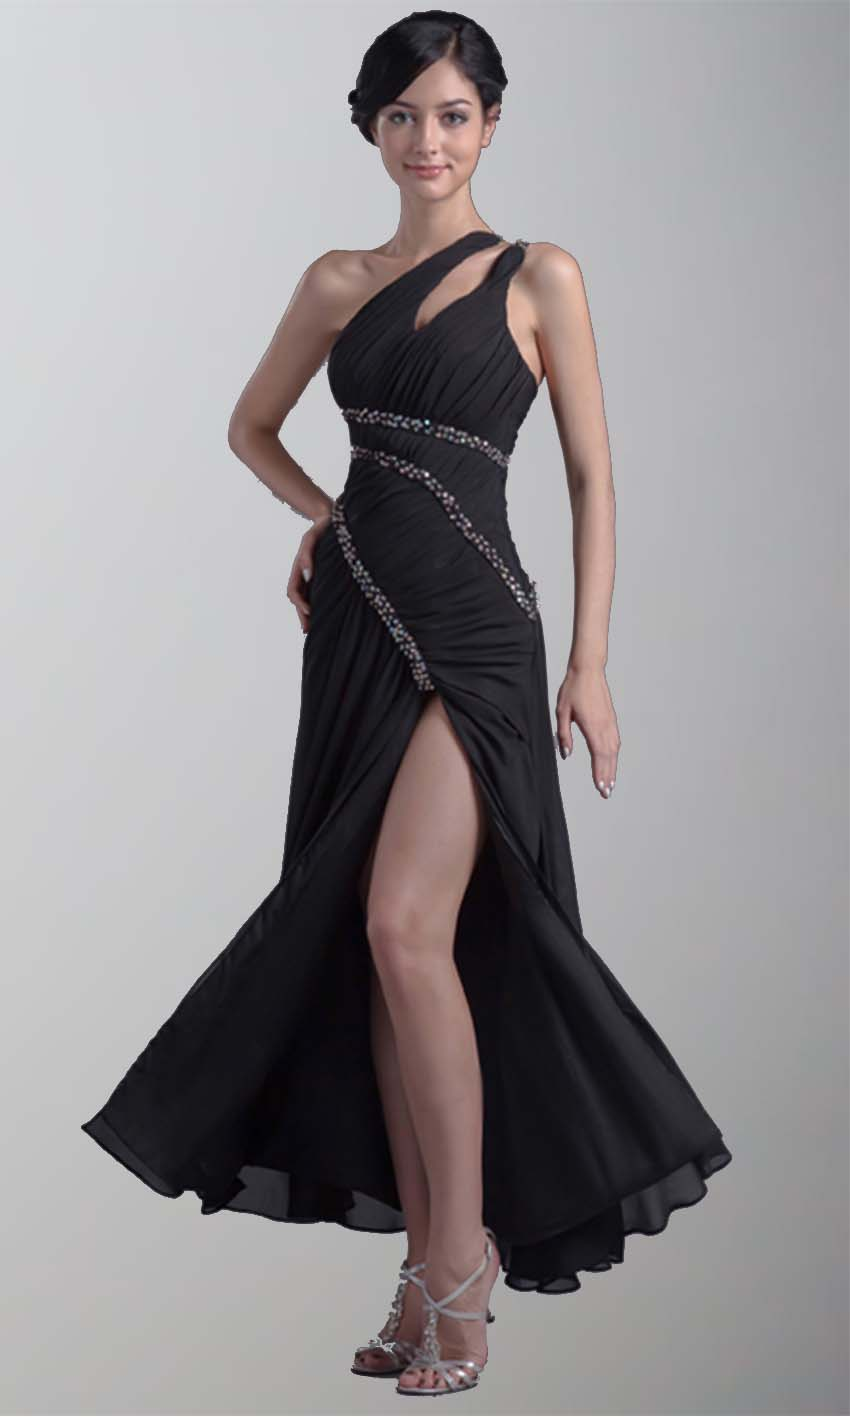 Side Slit Black Draped Long Prom Dresses KSP182 [KSP182] - £98.00 : Cheap Prom Dresses Uk, Bridesmaid Dresses, 2014 Prom & Evening Dresses, Look for cheap elegant prom dresses 2014, cocktail gowns, or dresses for special occasions? kissprom.co.uk offers various bridesmaid dresses, evening dress, free shipping to UK etc.